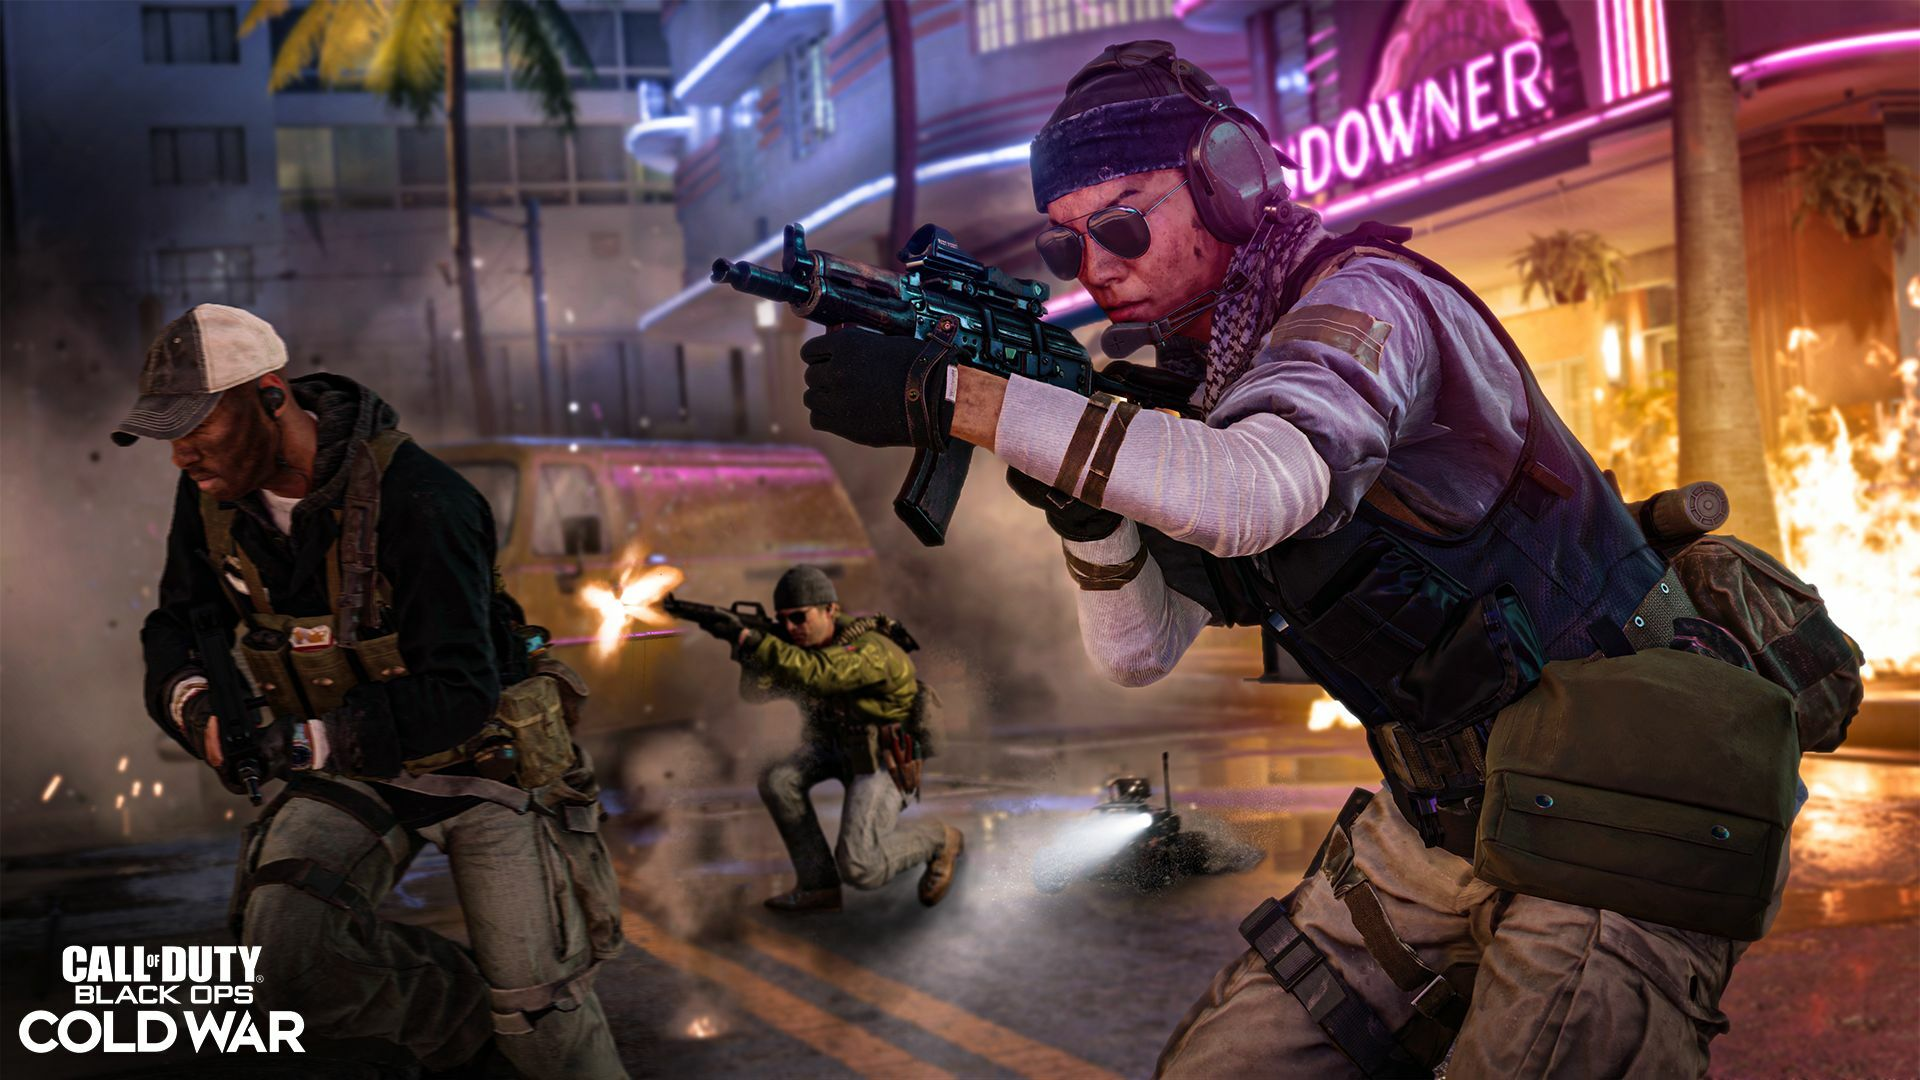 Call Of Duty: Black Ops Cold War – 10 Multiplayer Tips To Get Started